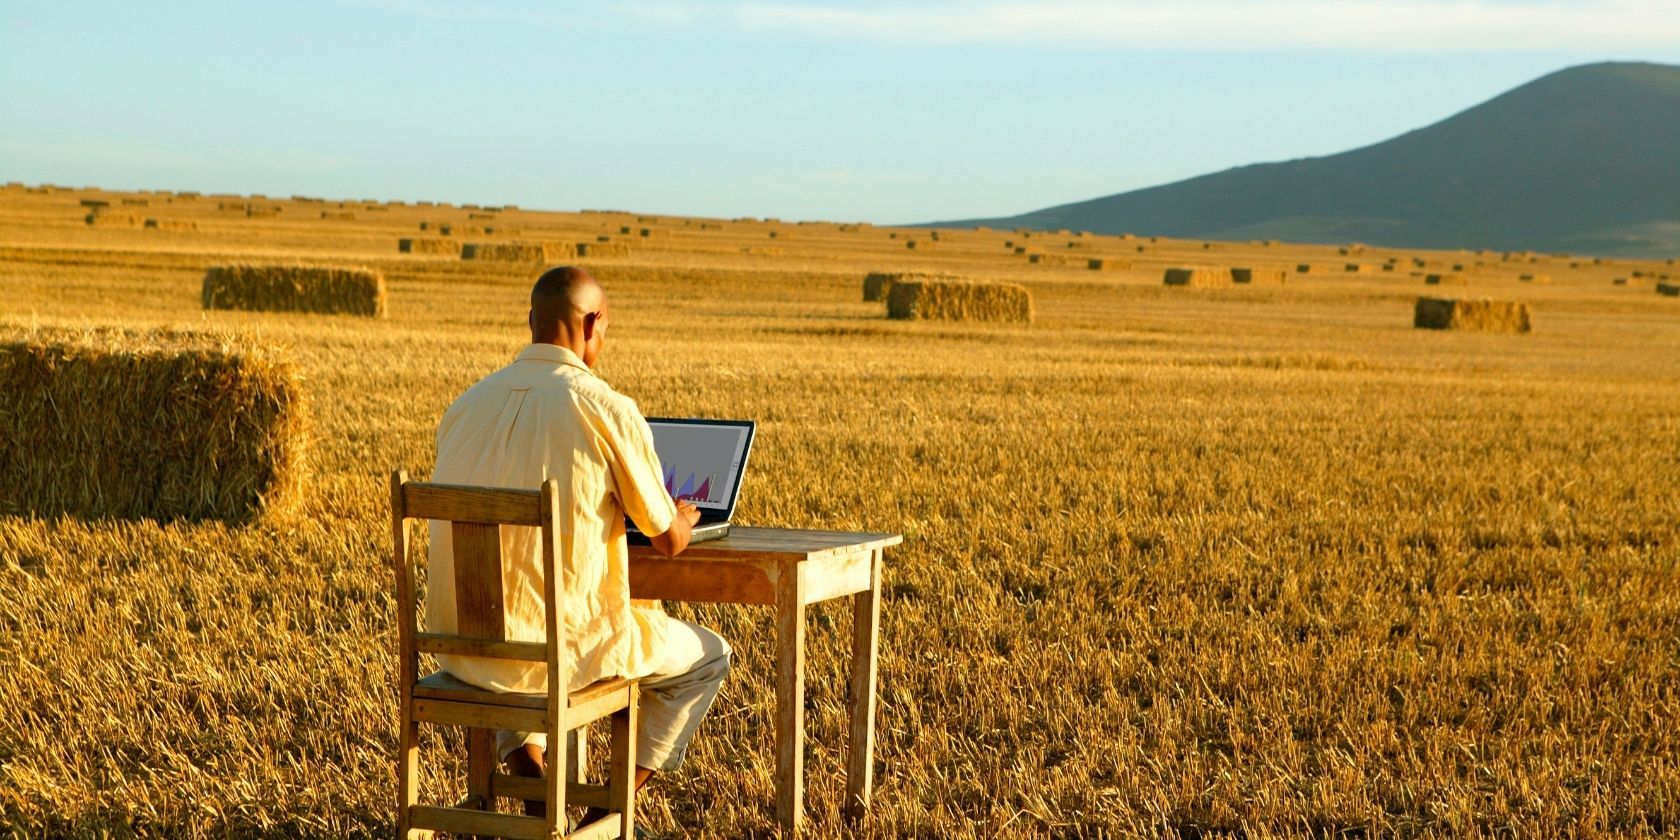 The Best High-Speed Internet Options for Rural Areas in 2021